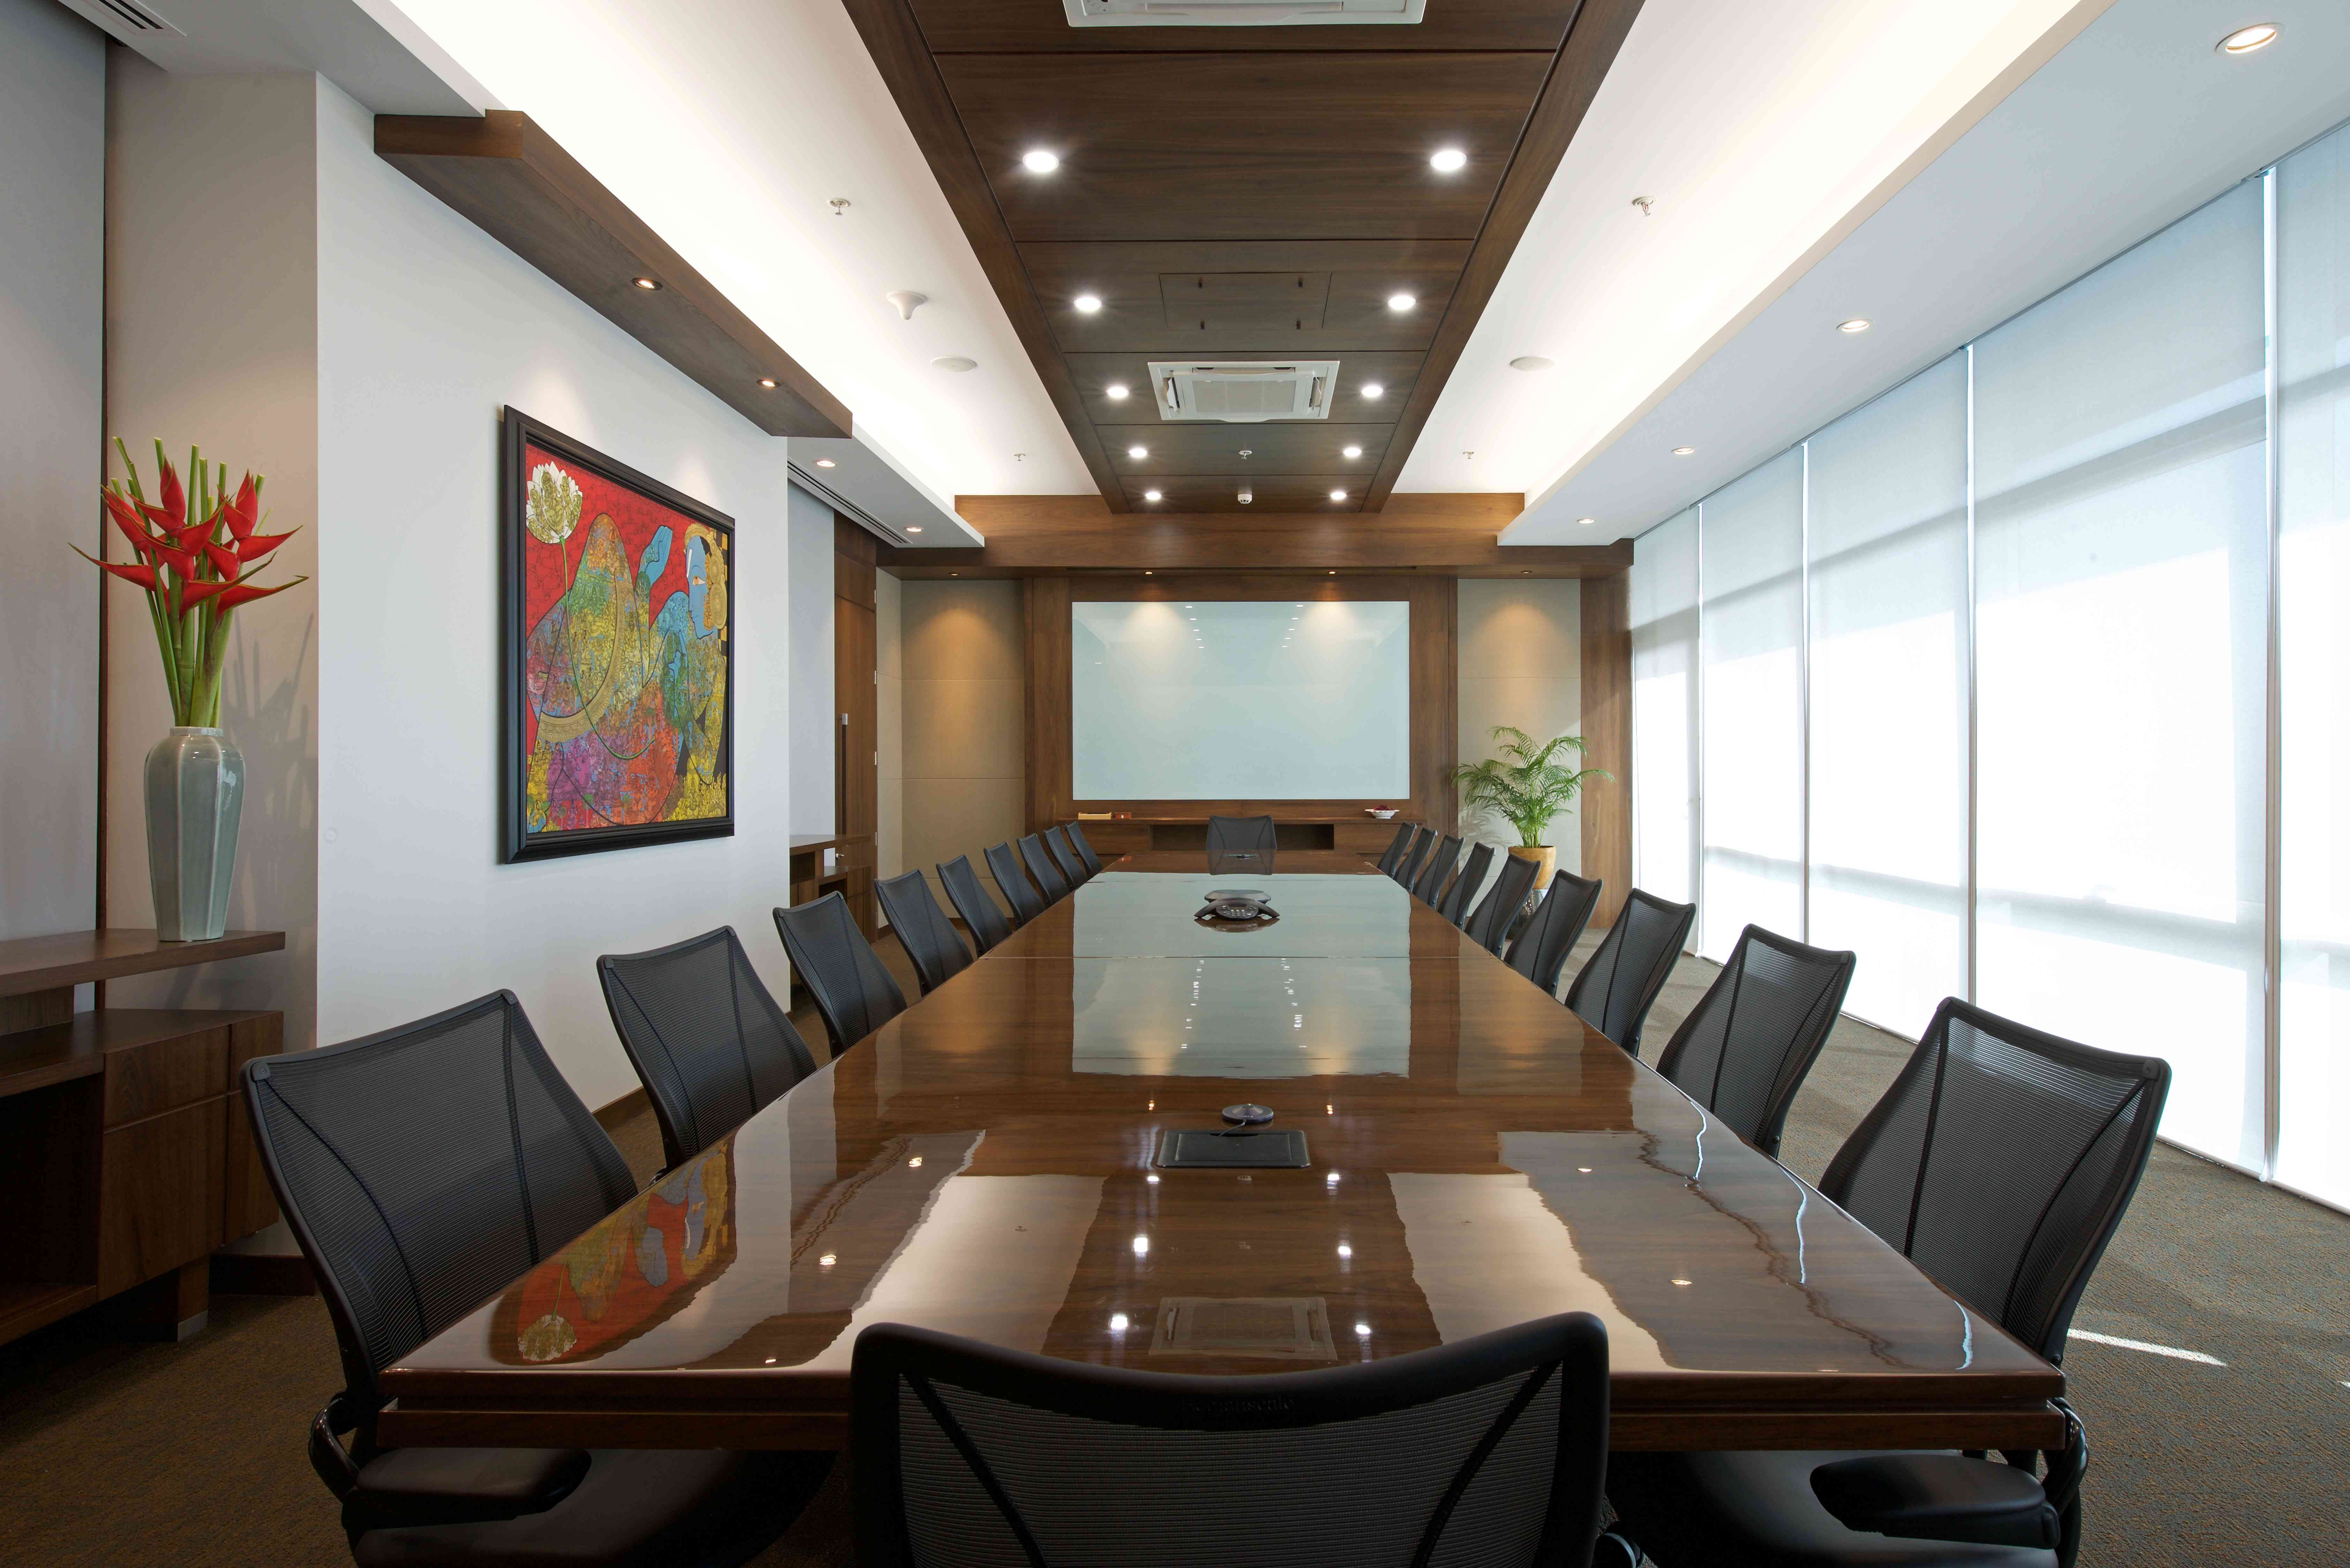 Ceiling Design Ideas For Office Ceiling Designs Images